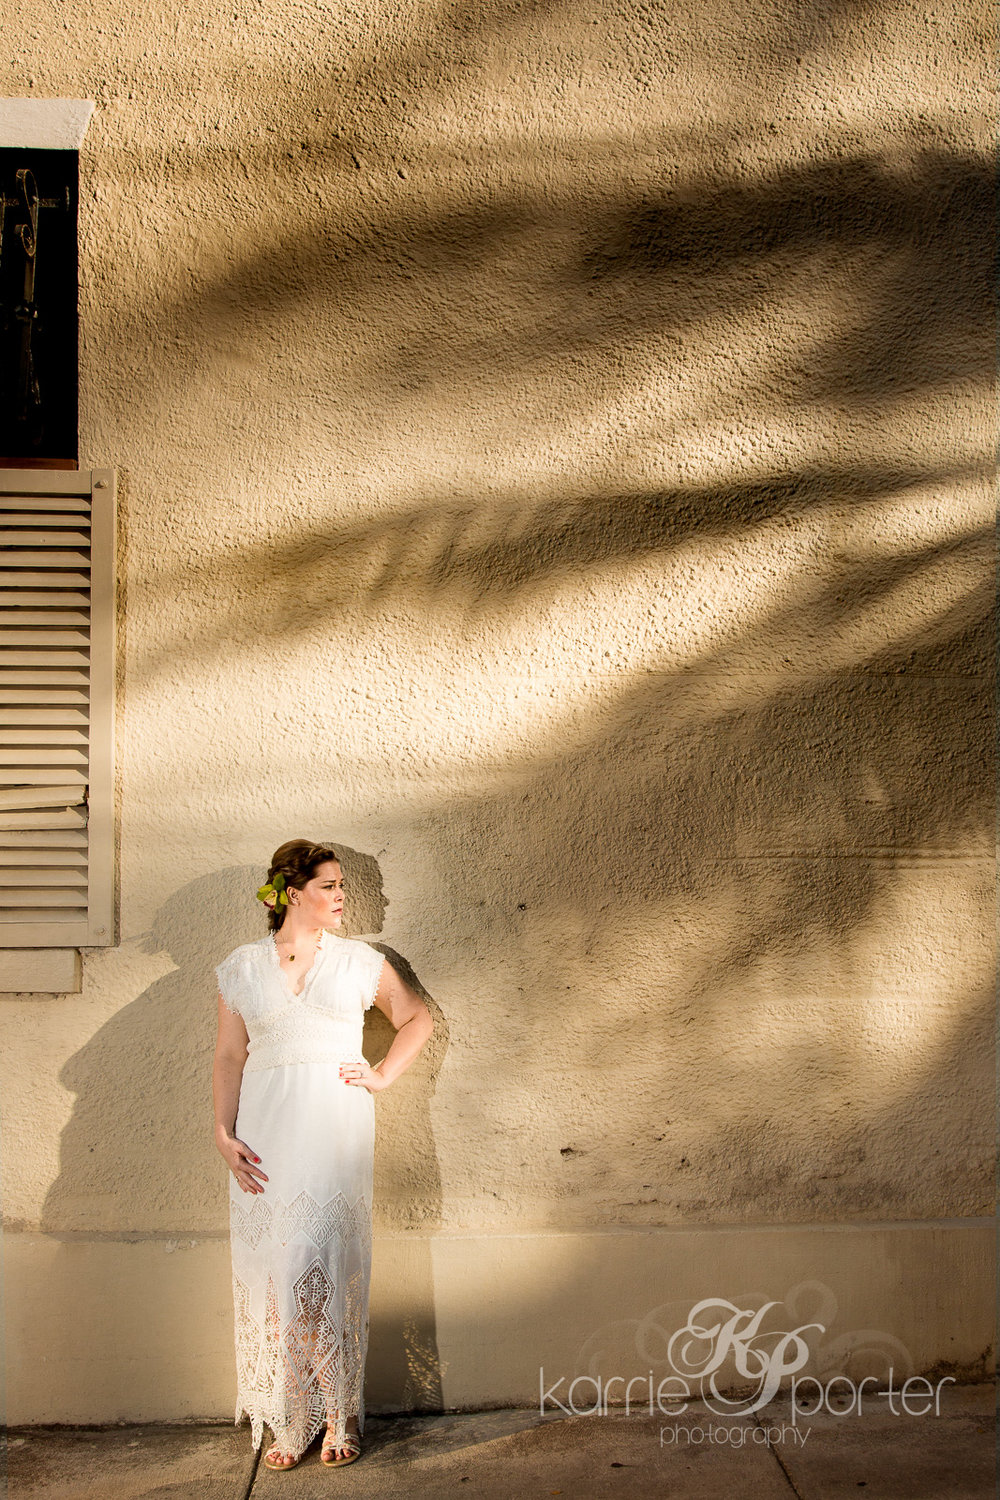 bride-posing-against-wall-with-palm-tree-shadow-during-key-west-wedding-by-photographer-karrie-porter.jpg